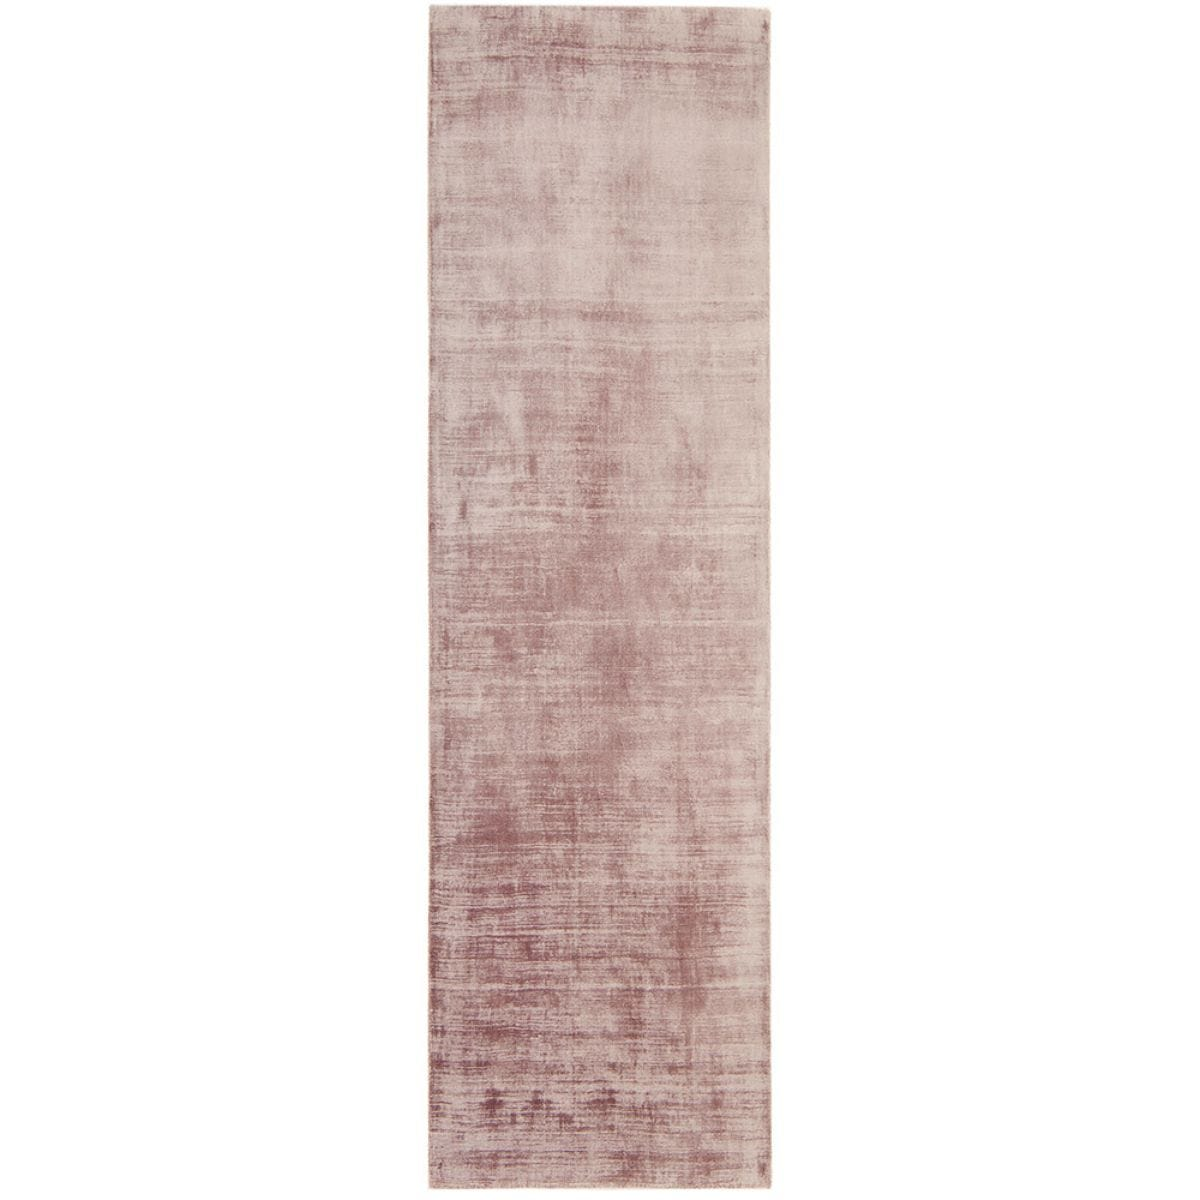 Asiatic Blade Runner Floor Rug, 66 x 240cm - Heather